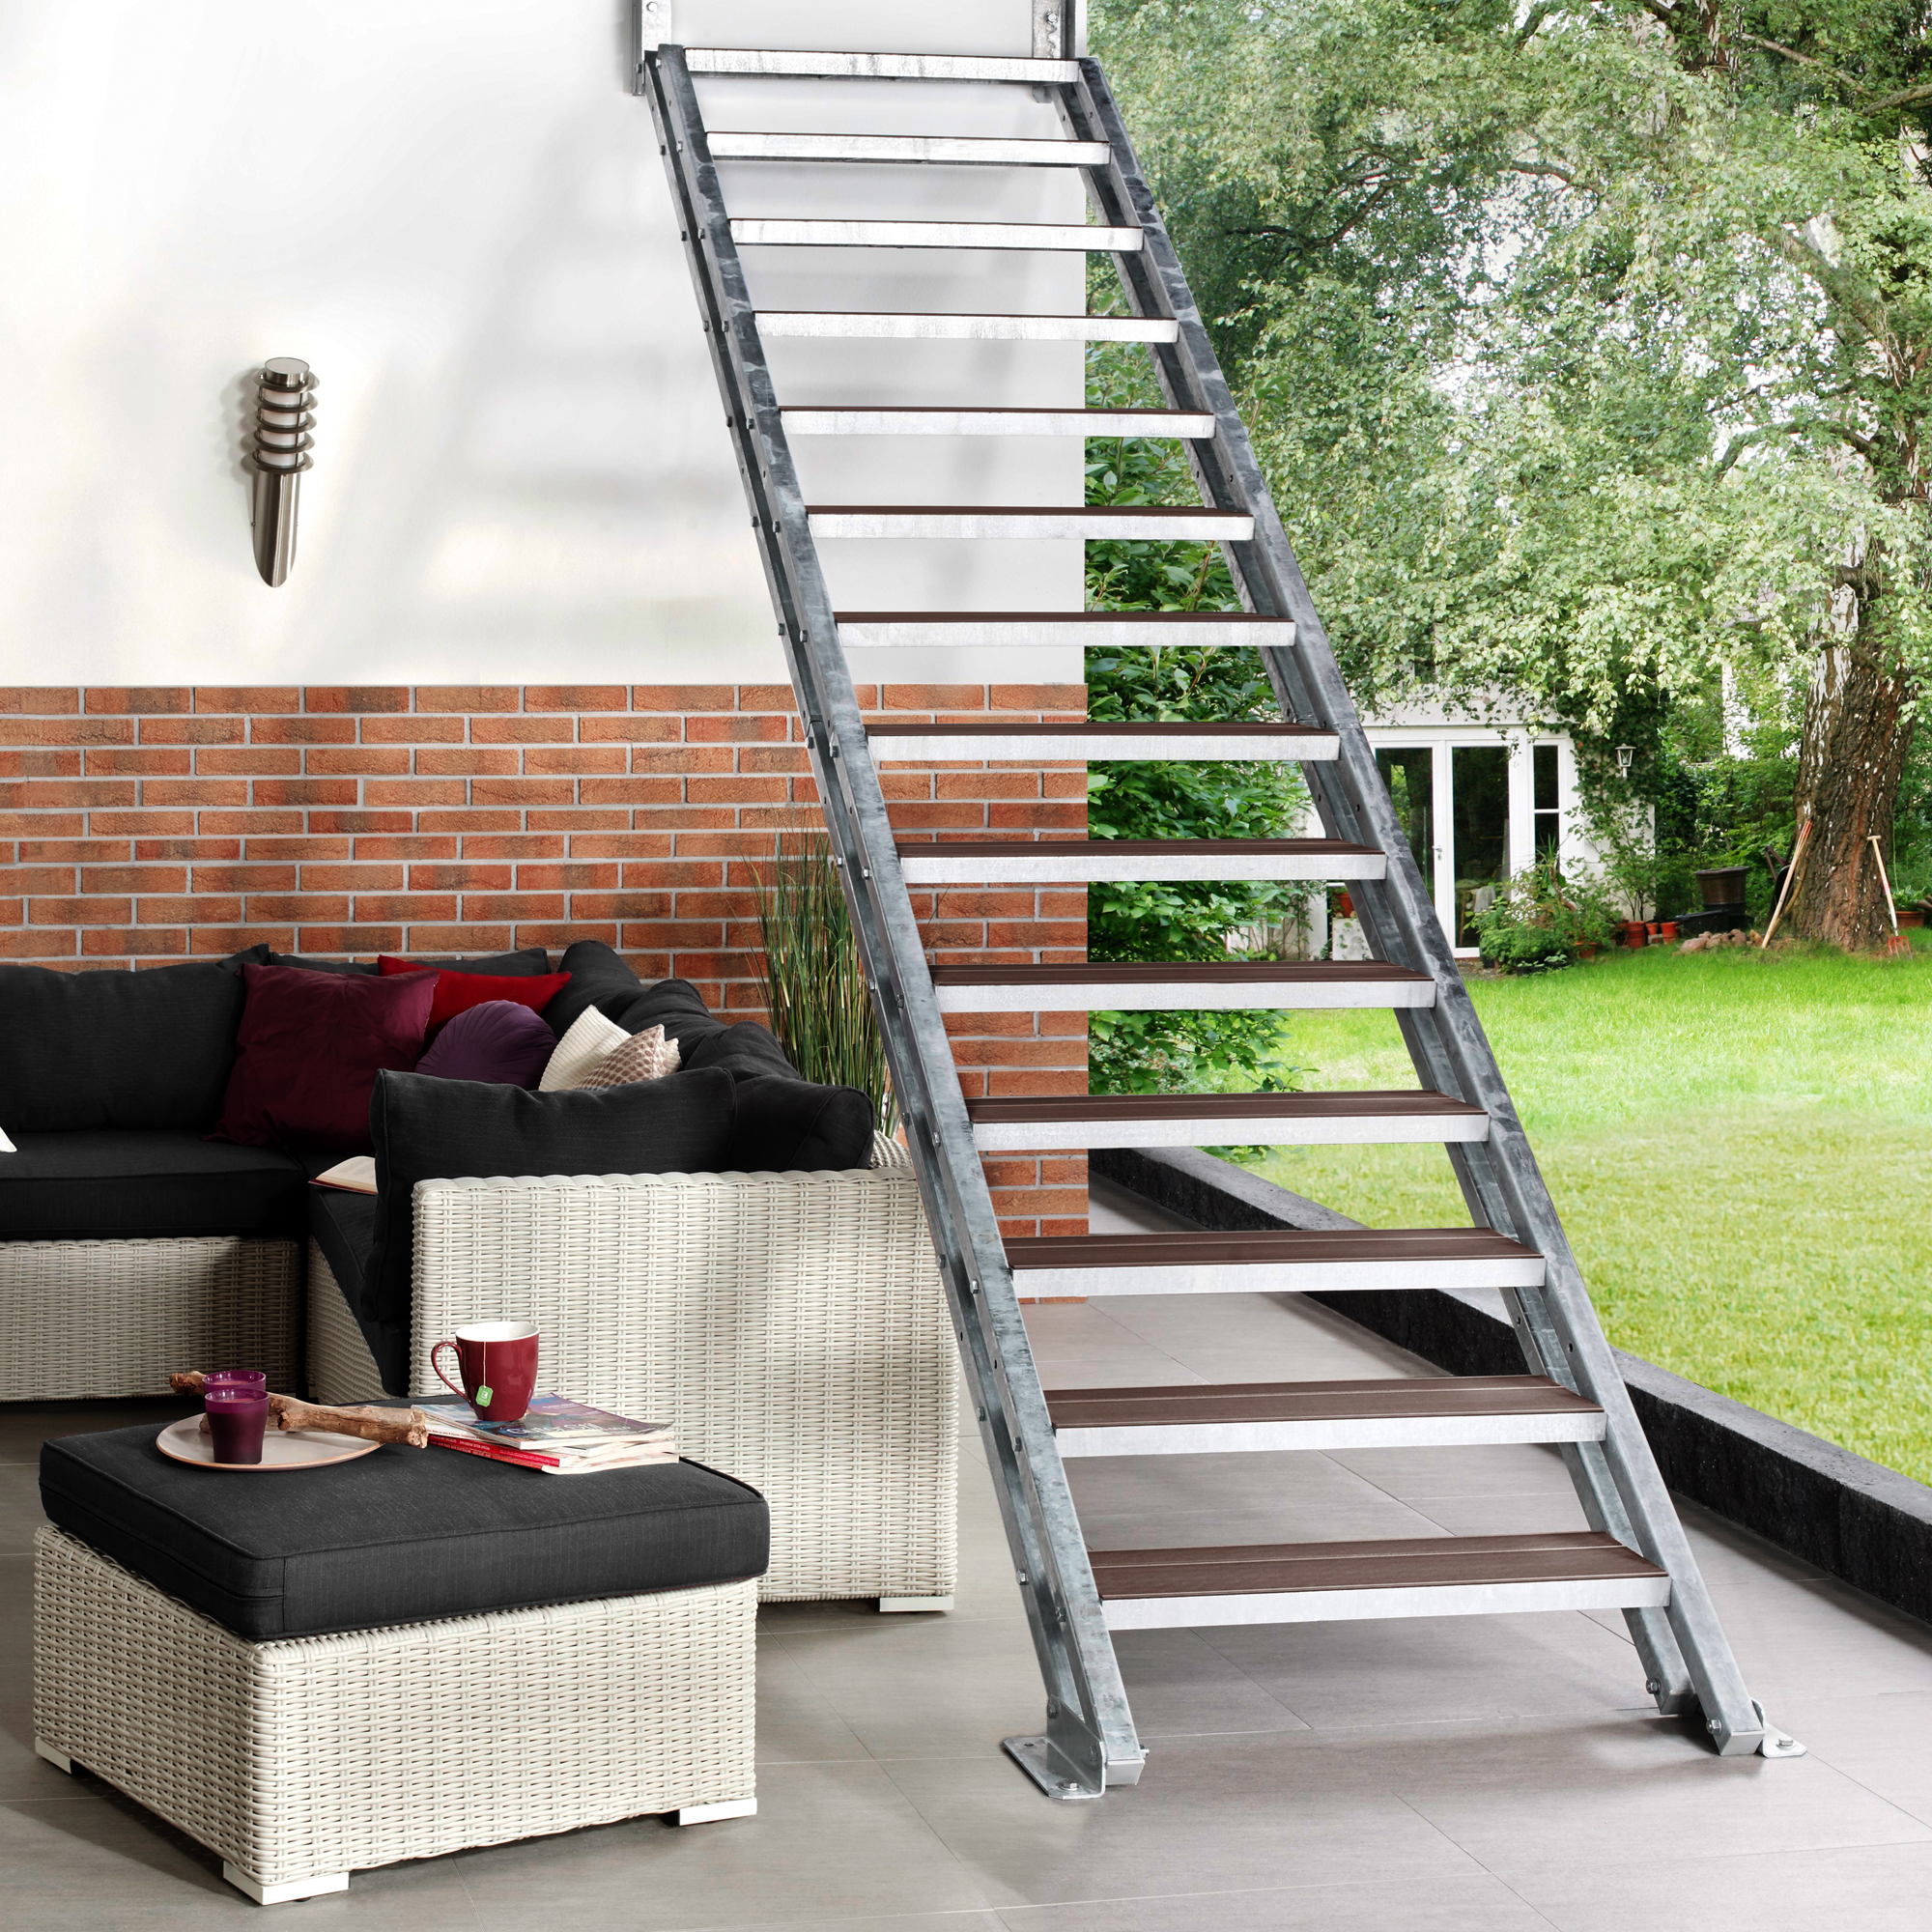 stahltreppe f r au en bei souterrain keller oder balkon. Black Bedroom Furniture Sets. Home Design Ideas